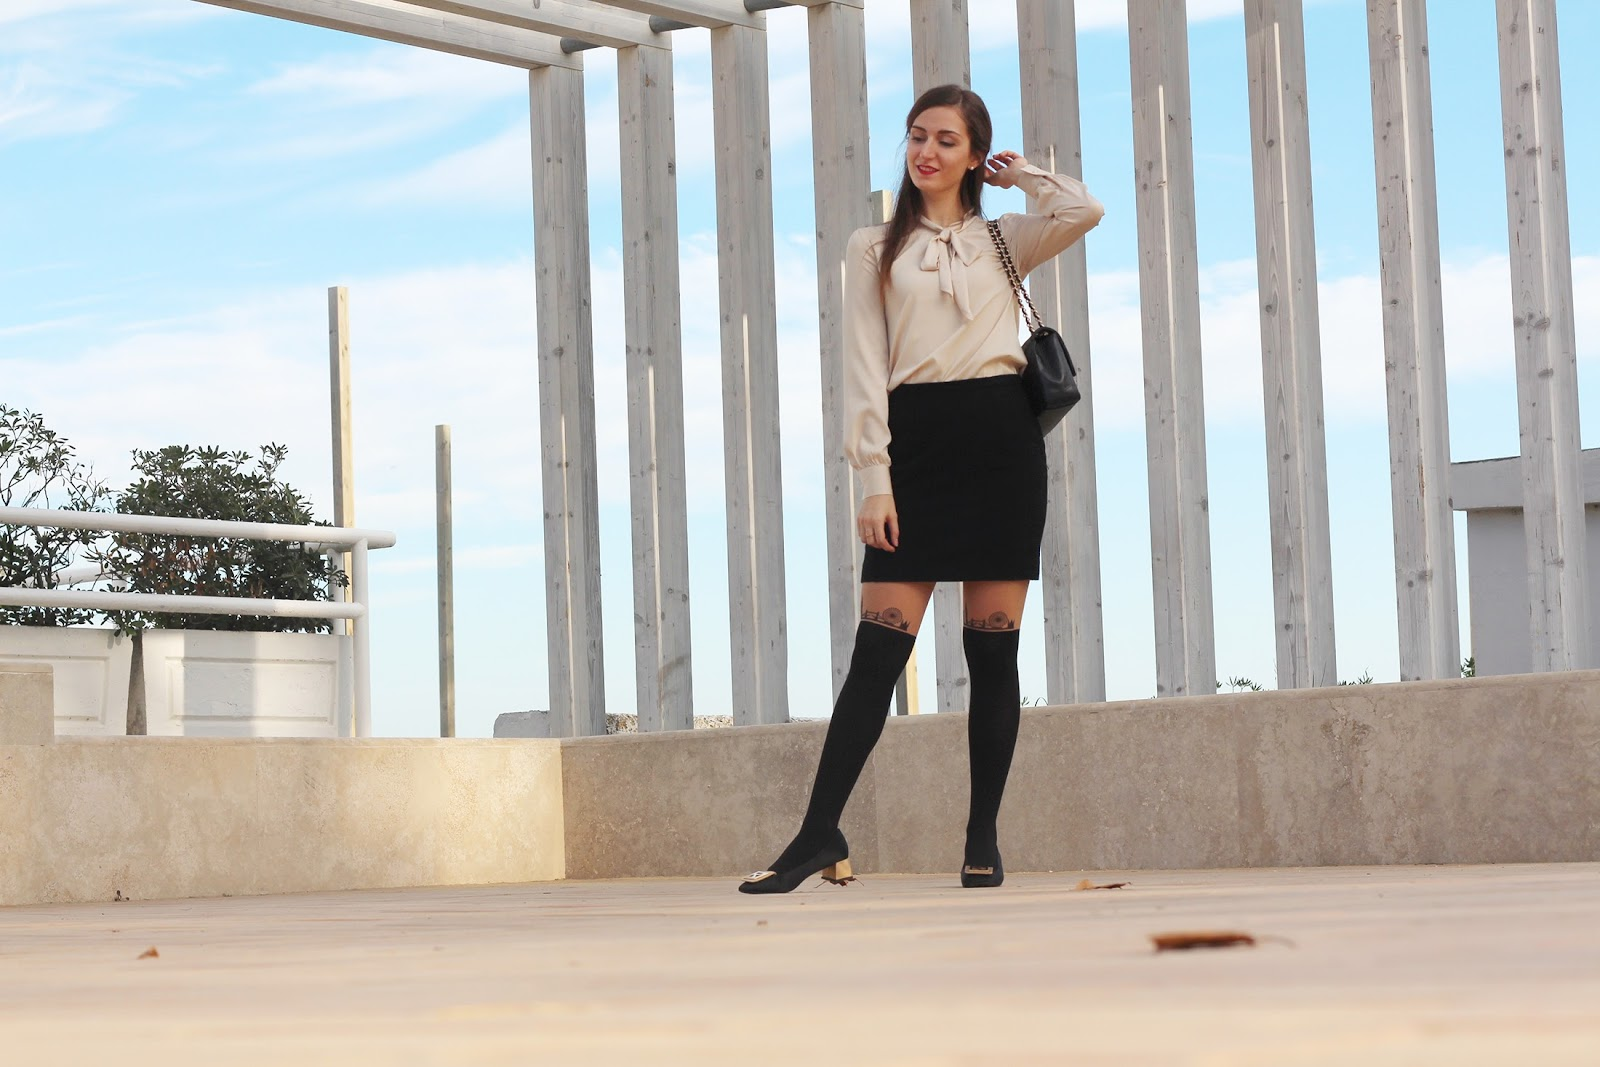 fashion blogger italy italia pescara outfit ootd style vogue fratelli rossetti flats shoes scarpe ballerine chanel bag calzedonia bow shirt sheinside fiocco camicia accessorize h&m anelli rings